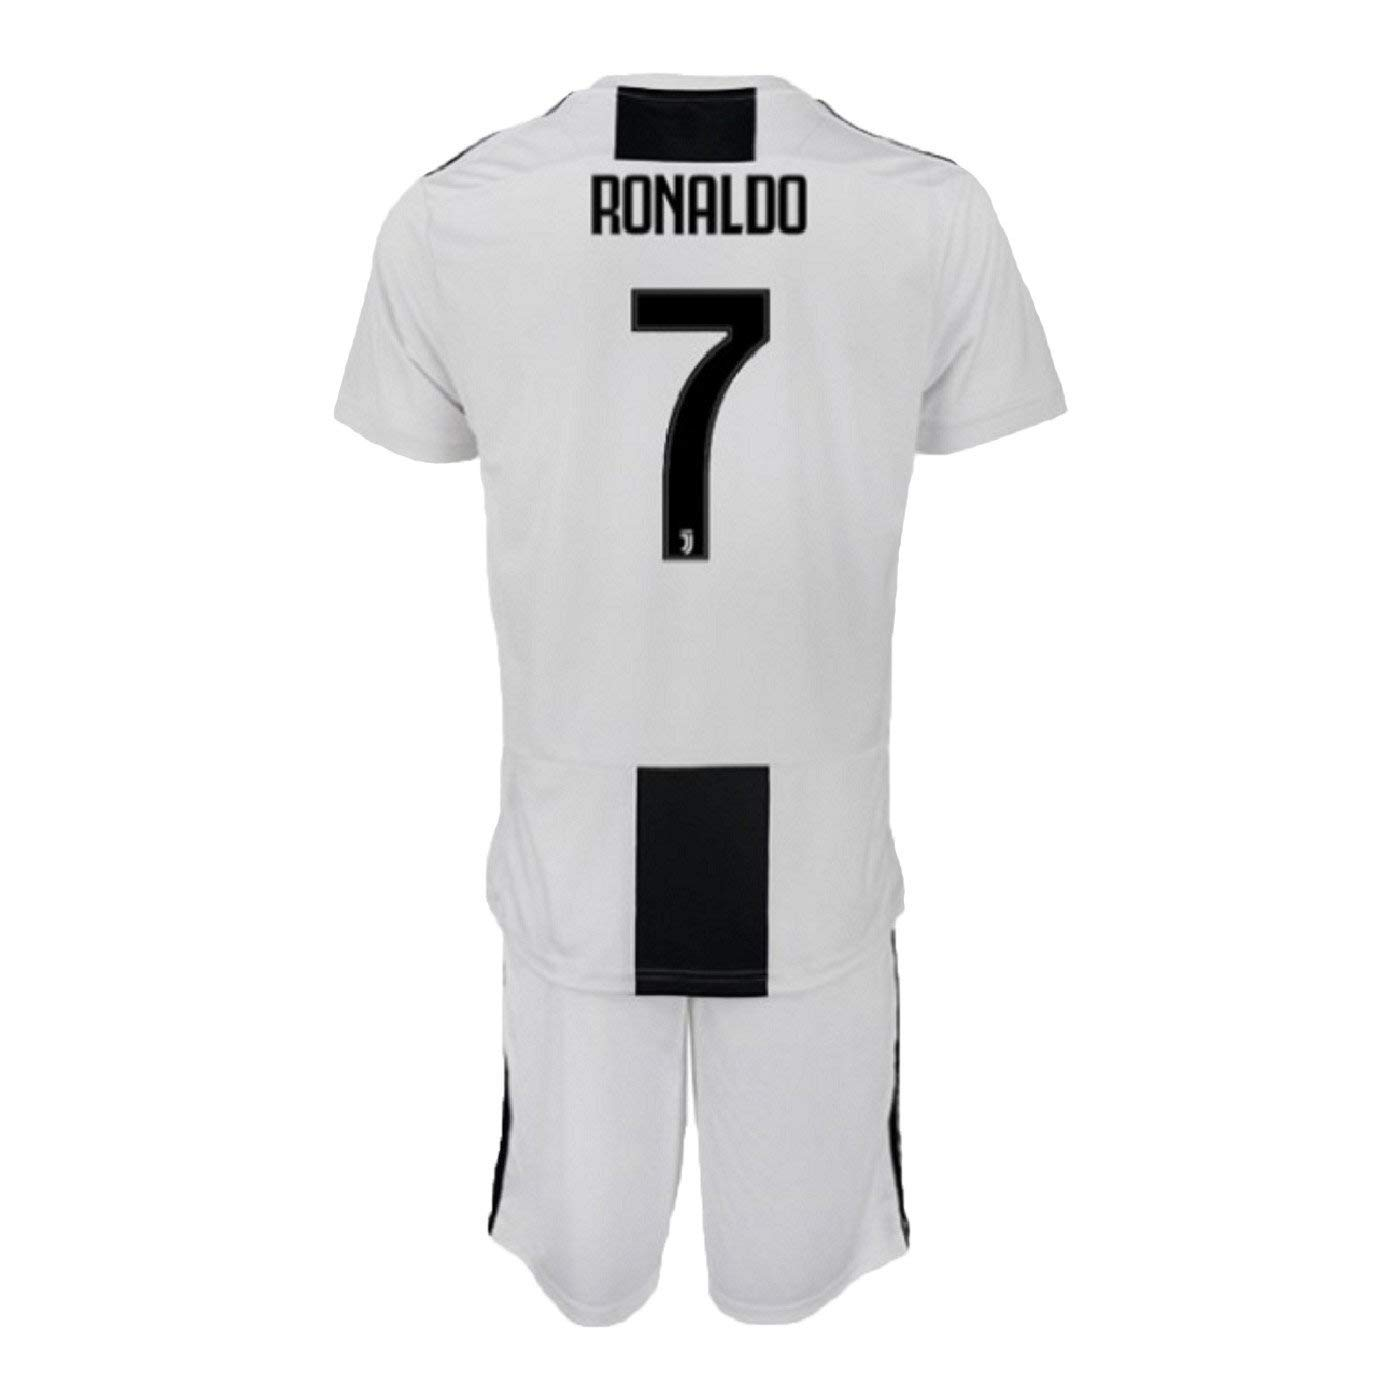 b81791f44 Get Quotations · Fiueker Youth Ronaldo Jerseys Juventus #7 Soccer Jersey  2018/2019 Home Shirt